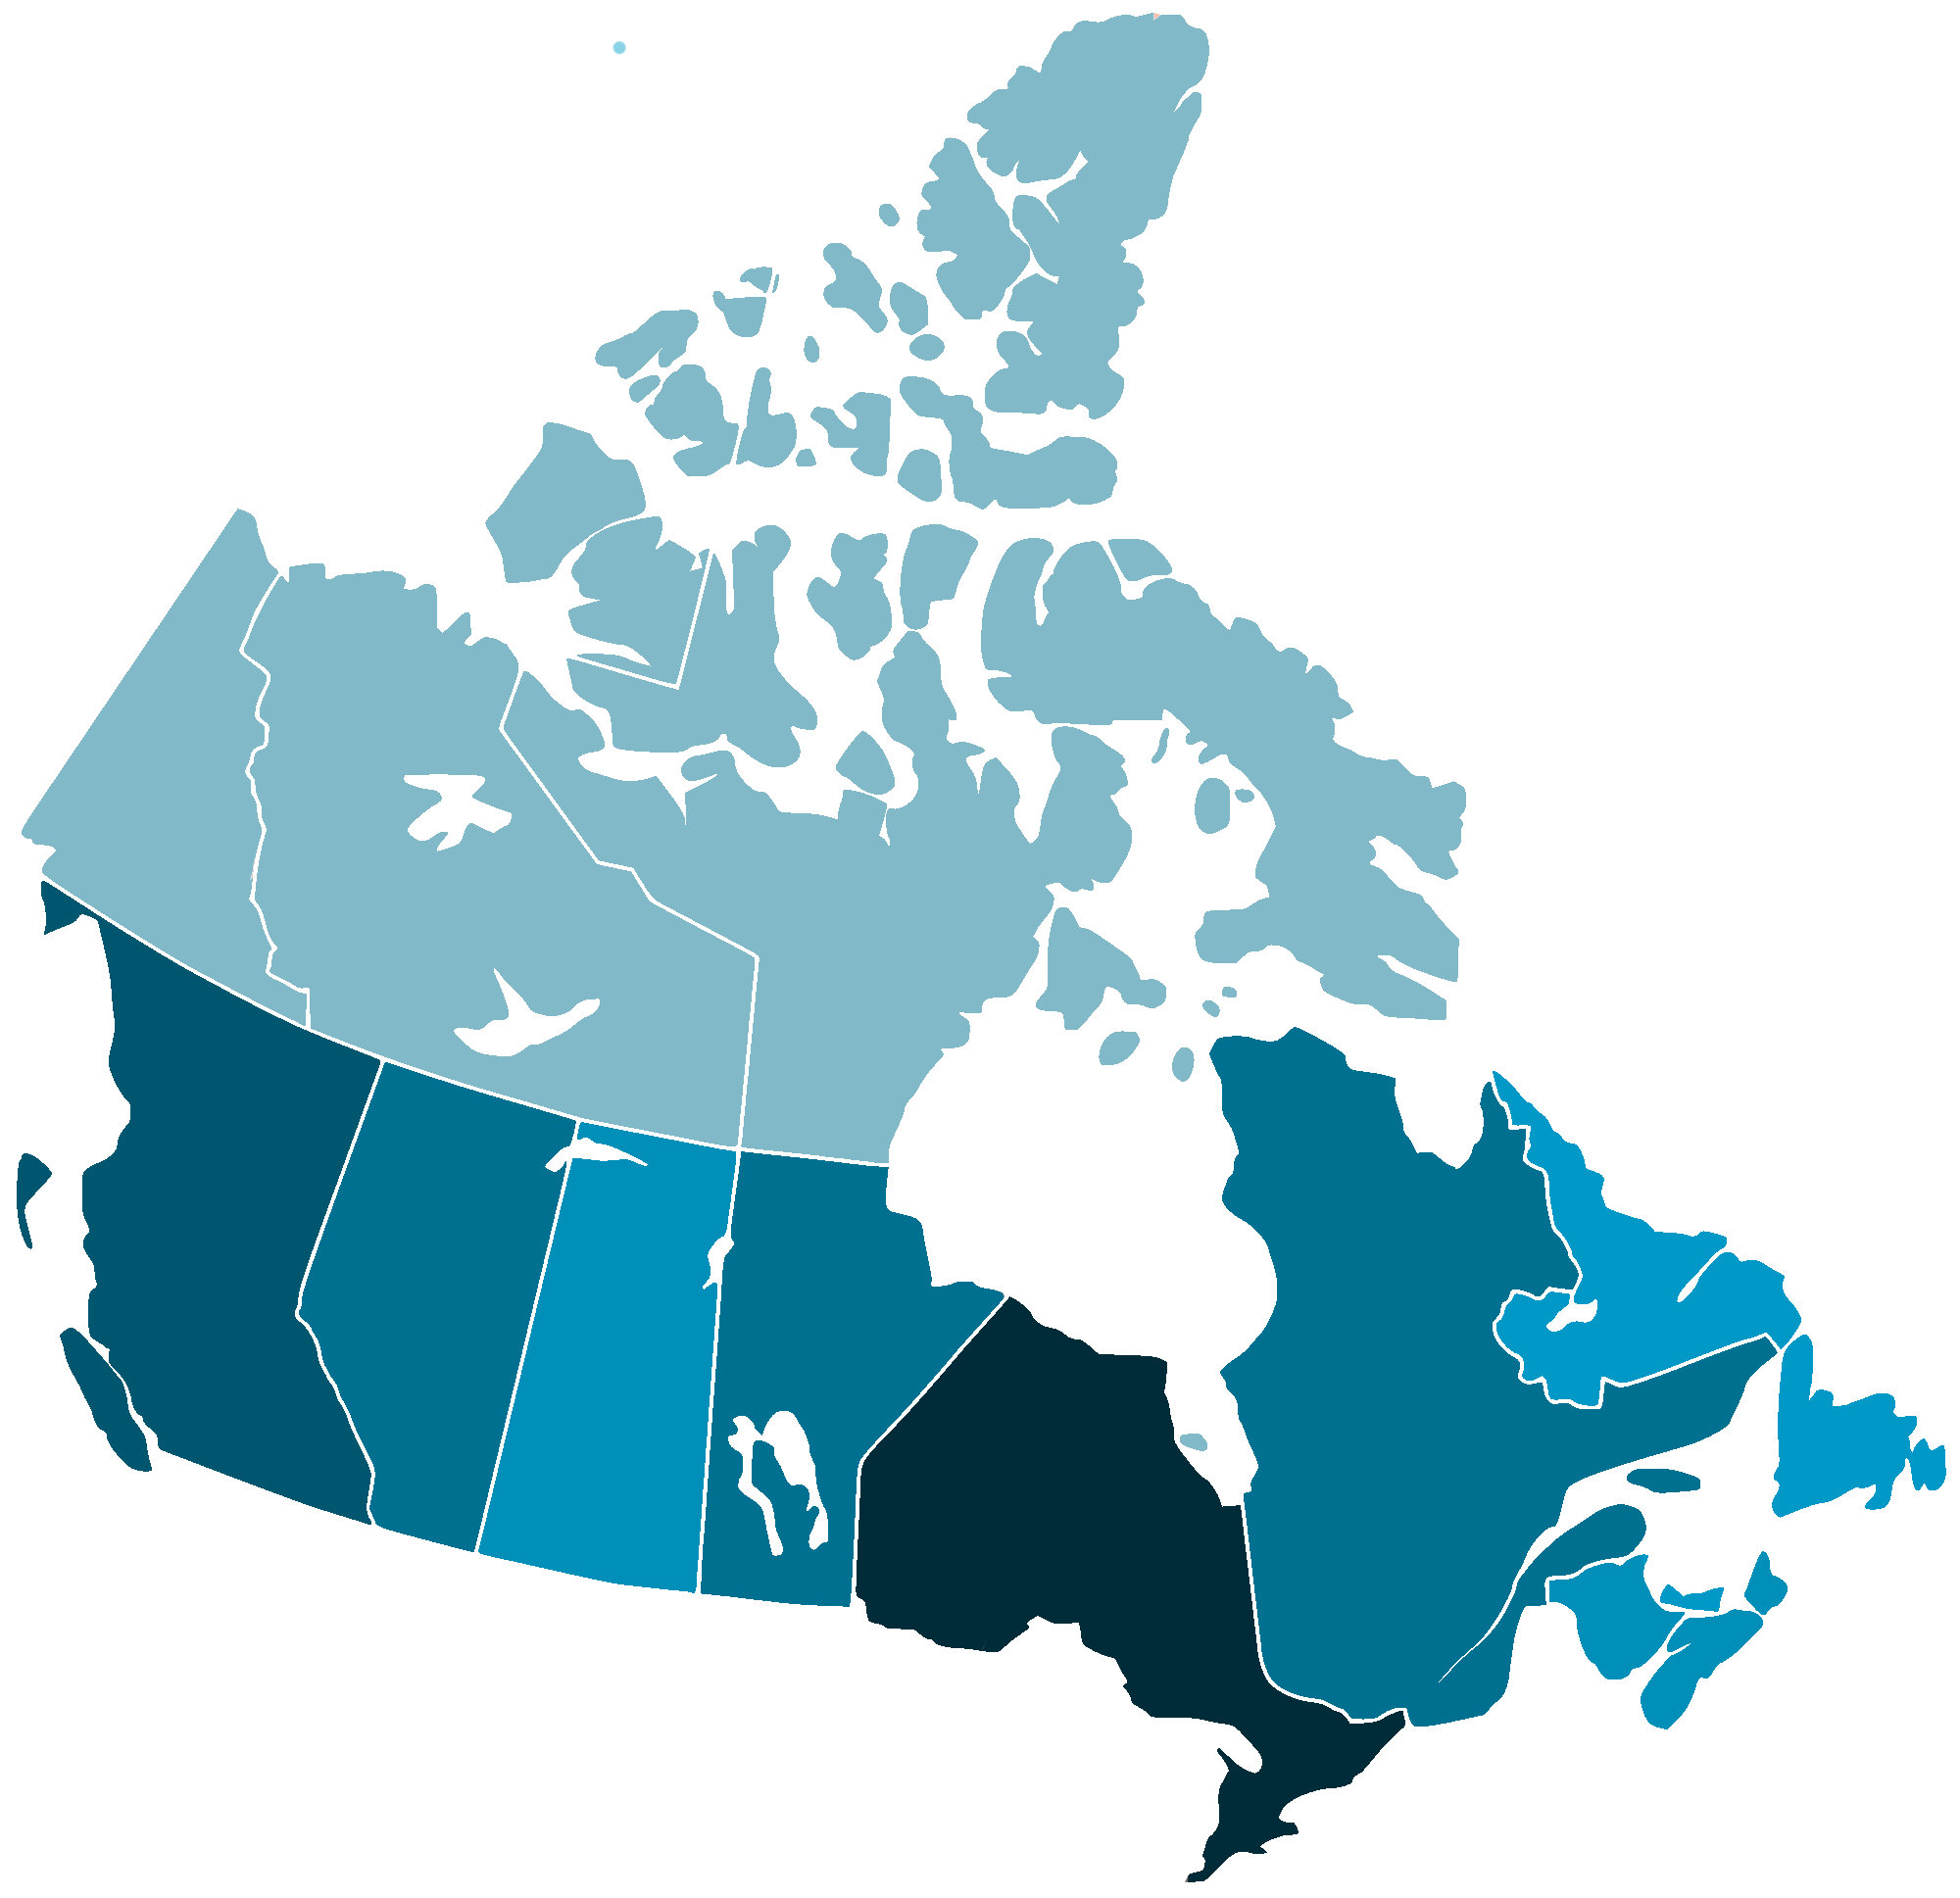 canada map 4.png